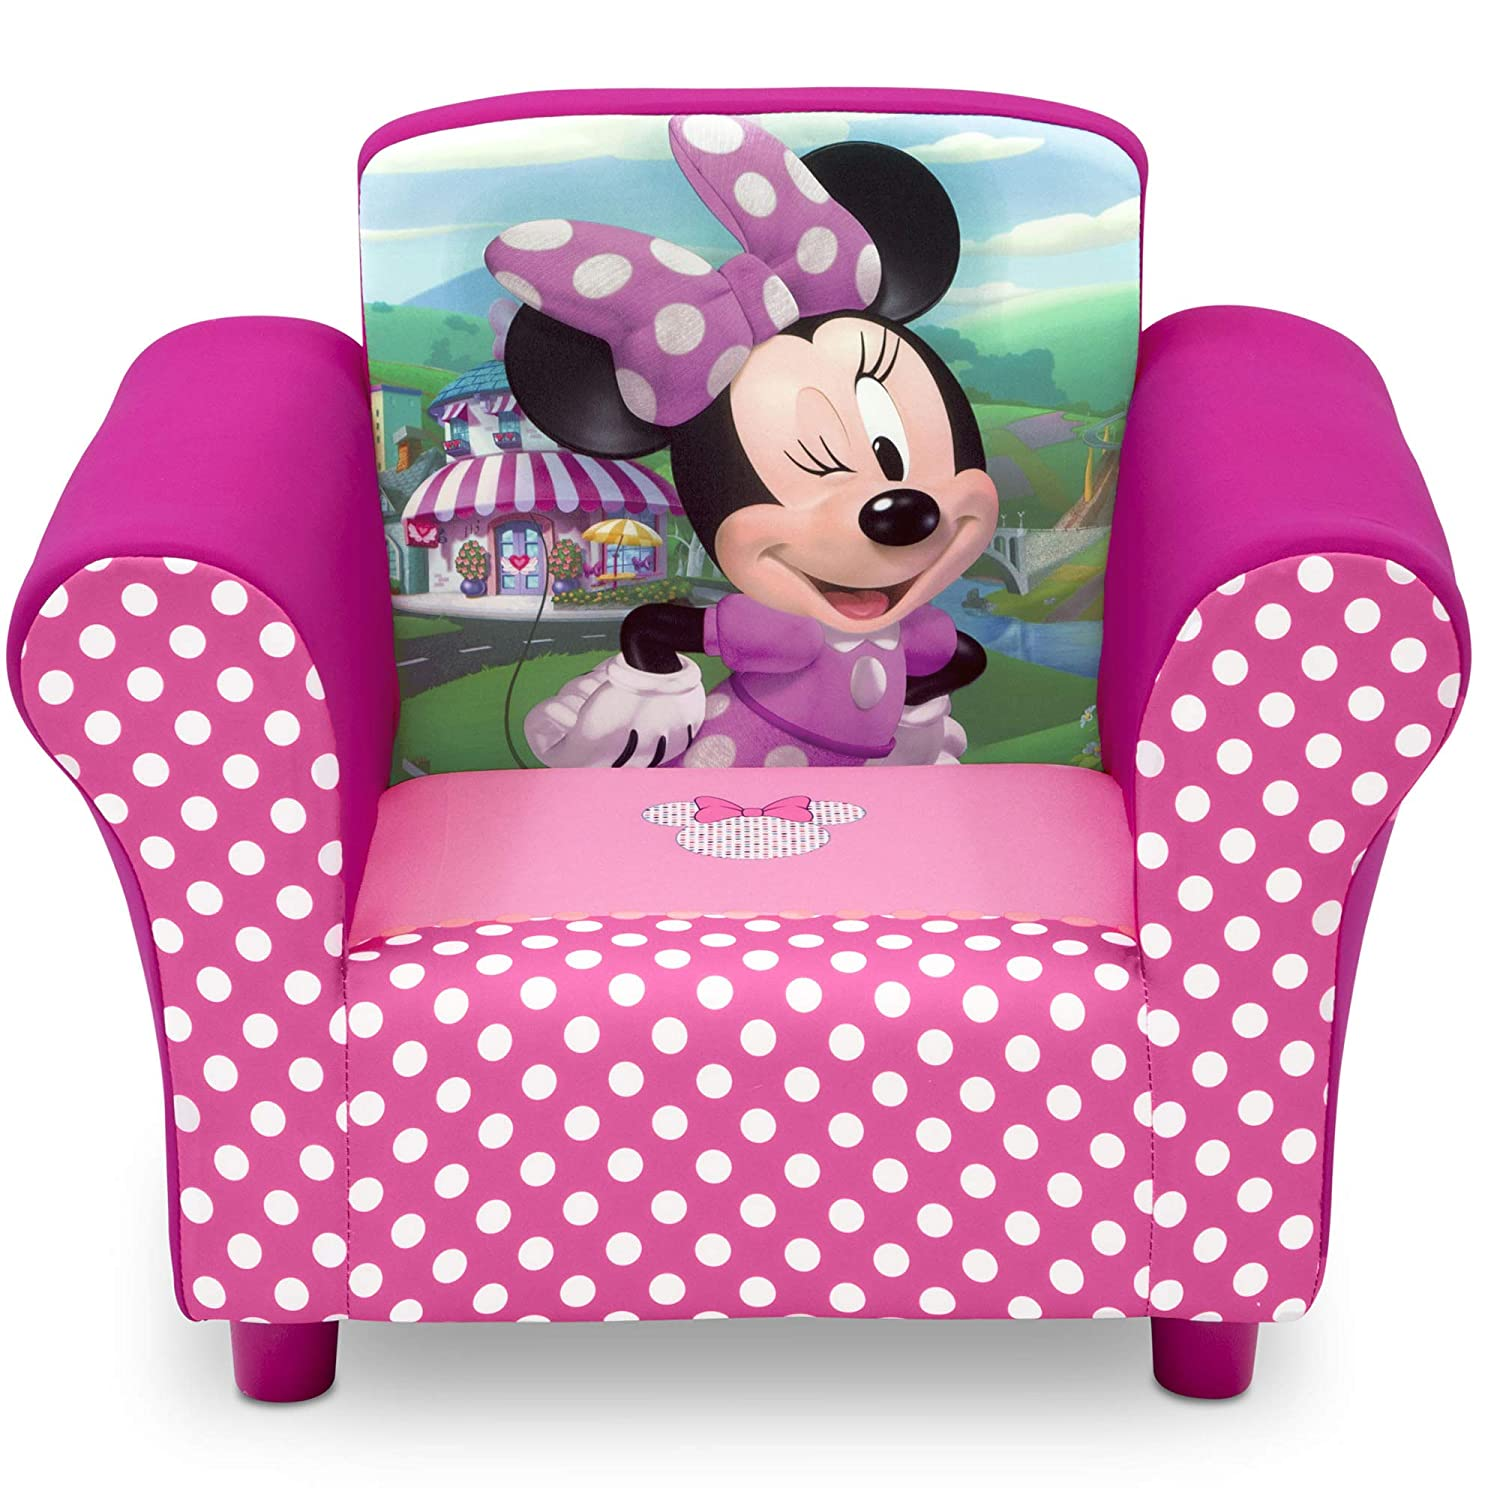 Delta Max 67% OFF Children Finally resale start Disney Minnie Upholstered Chair Mouse